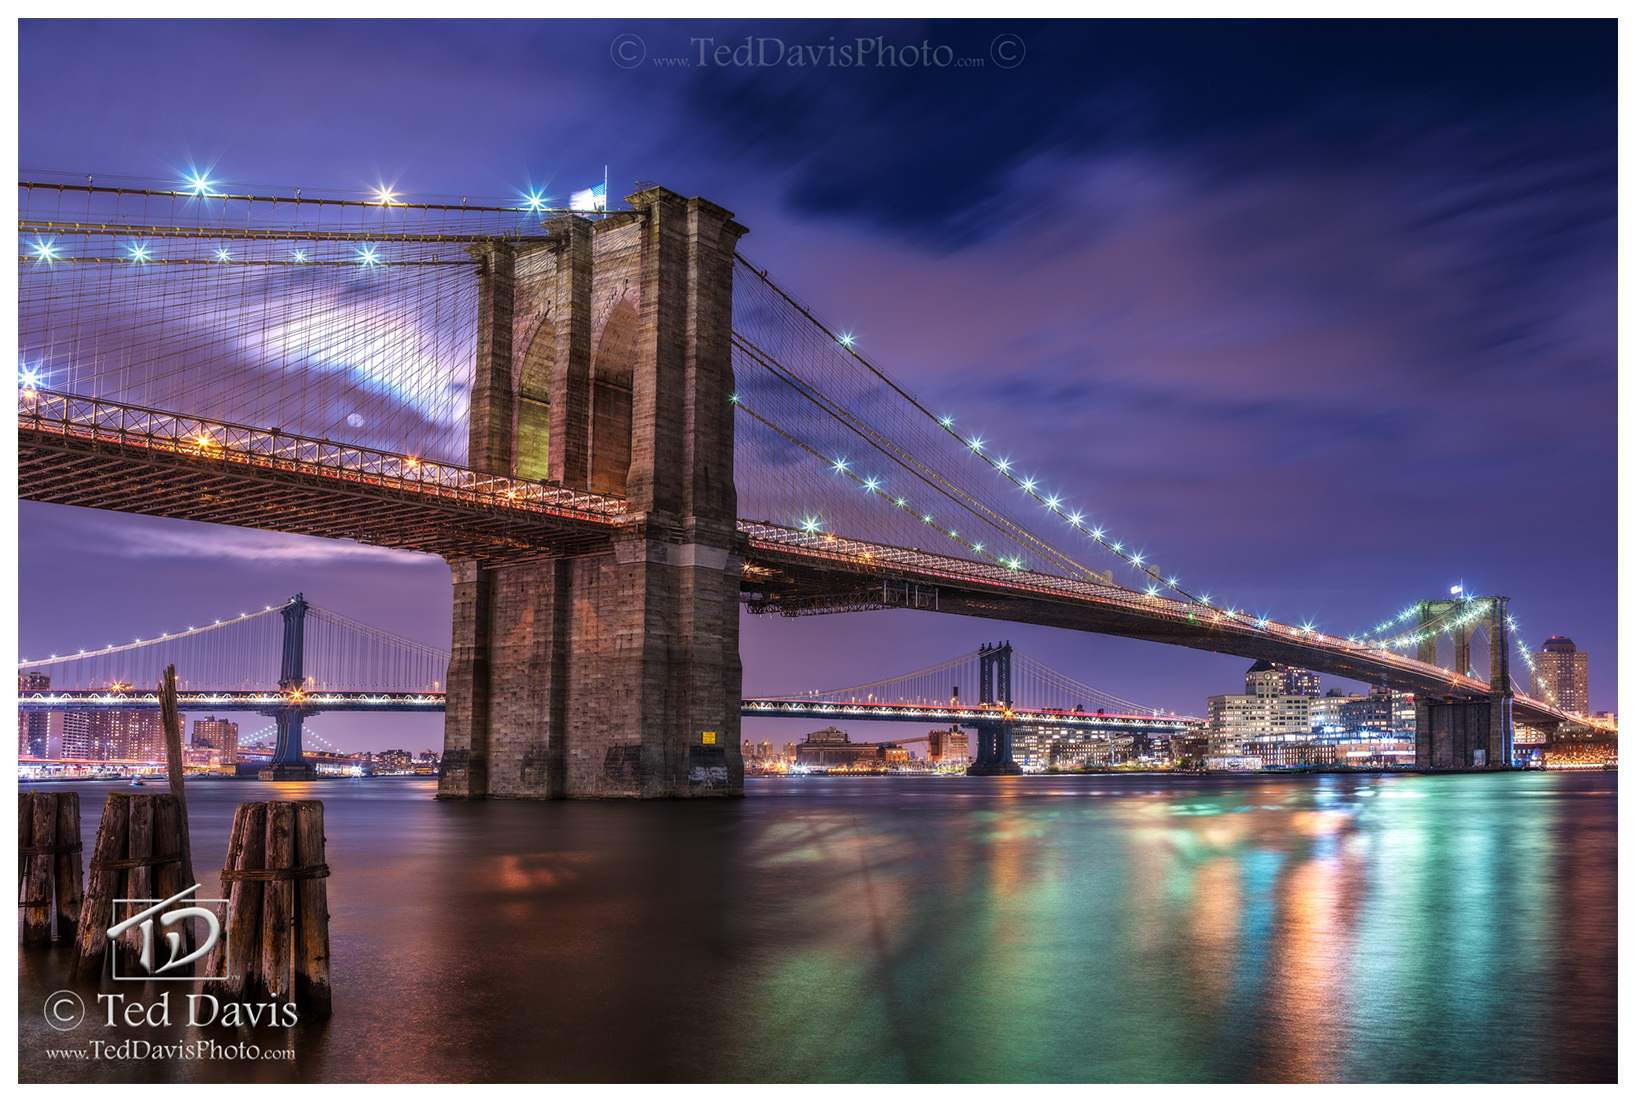 new york, brooklyn, crossings, east, river, bridge, manhattan, ingenuity, full moon, moon, glow, photo